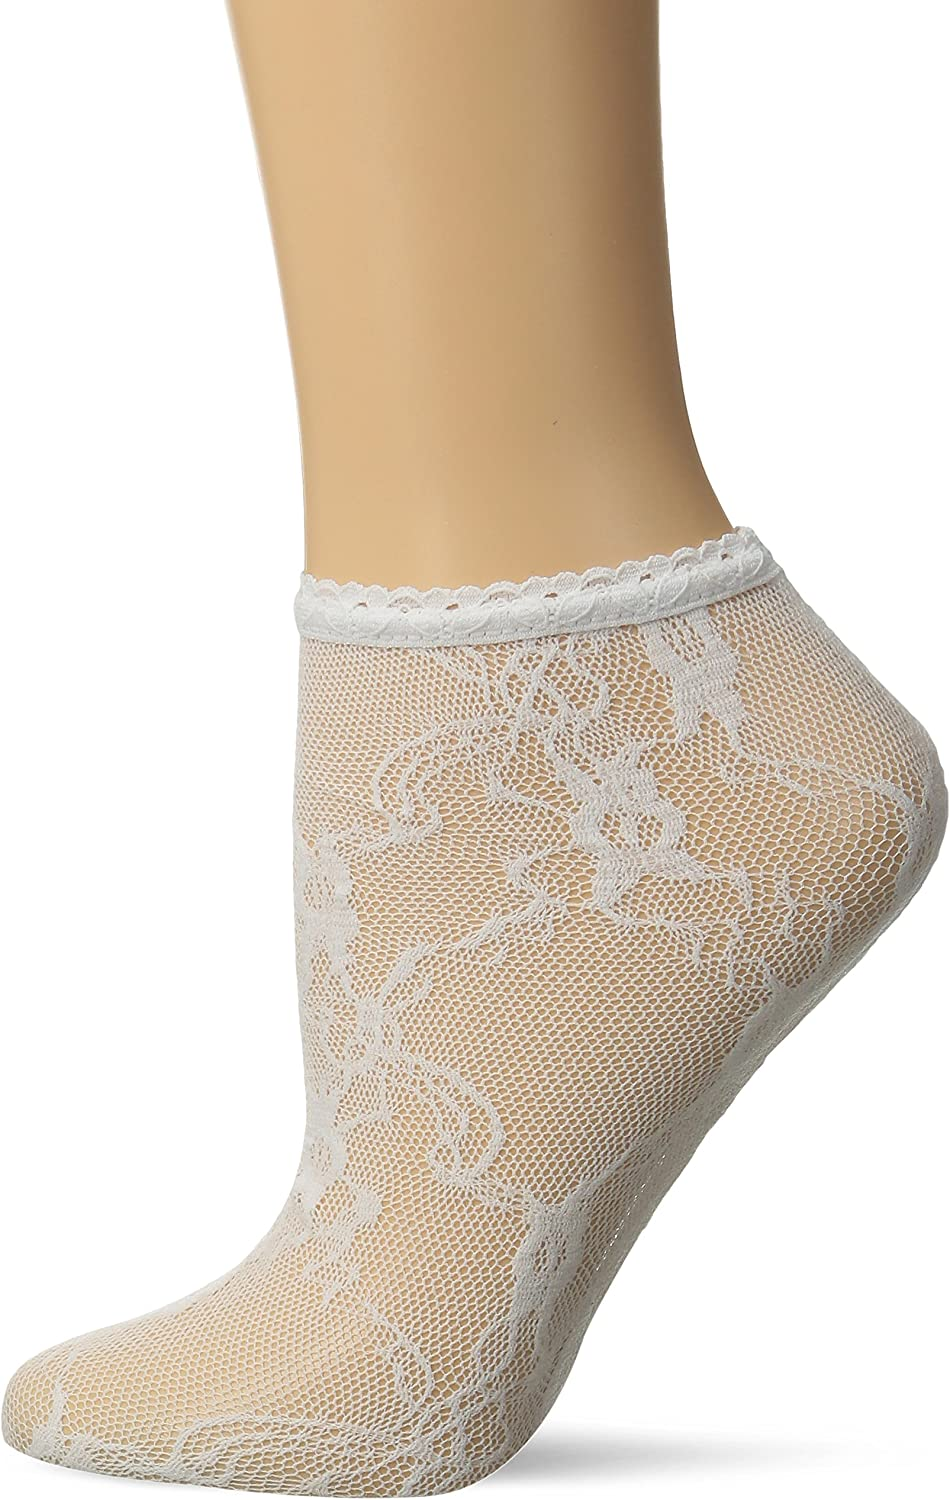 ankle chain white lace ribbon and connector